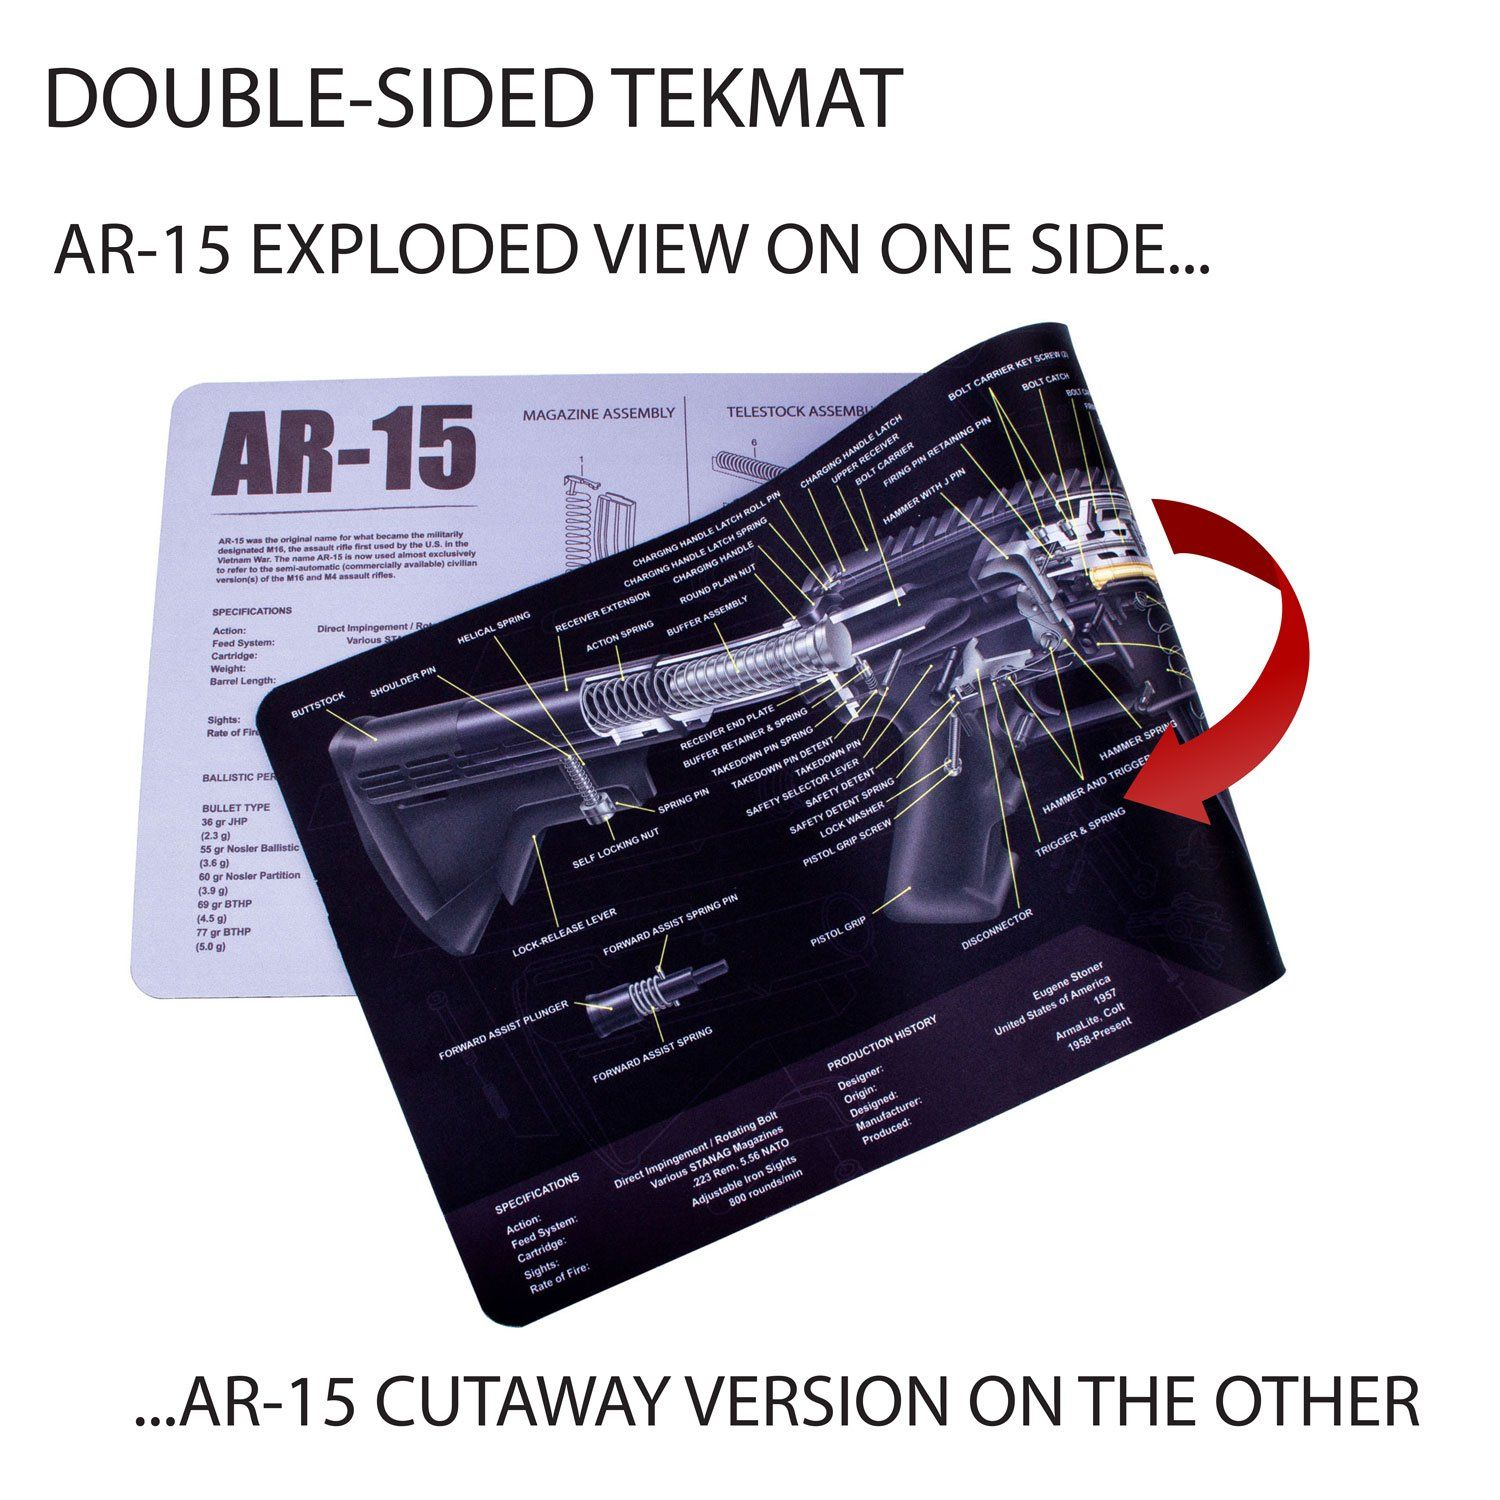 medium resolution of tekmat ar 15 cleaning mat 12 x 36 thick durable waterproof long gun cleaning mat with parts diagram and instructions armorers bench mat price 13 98